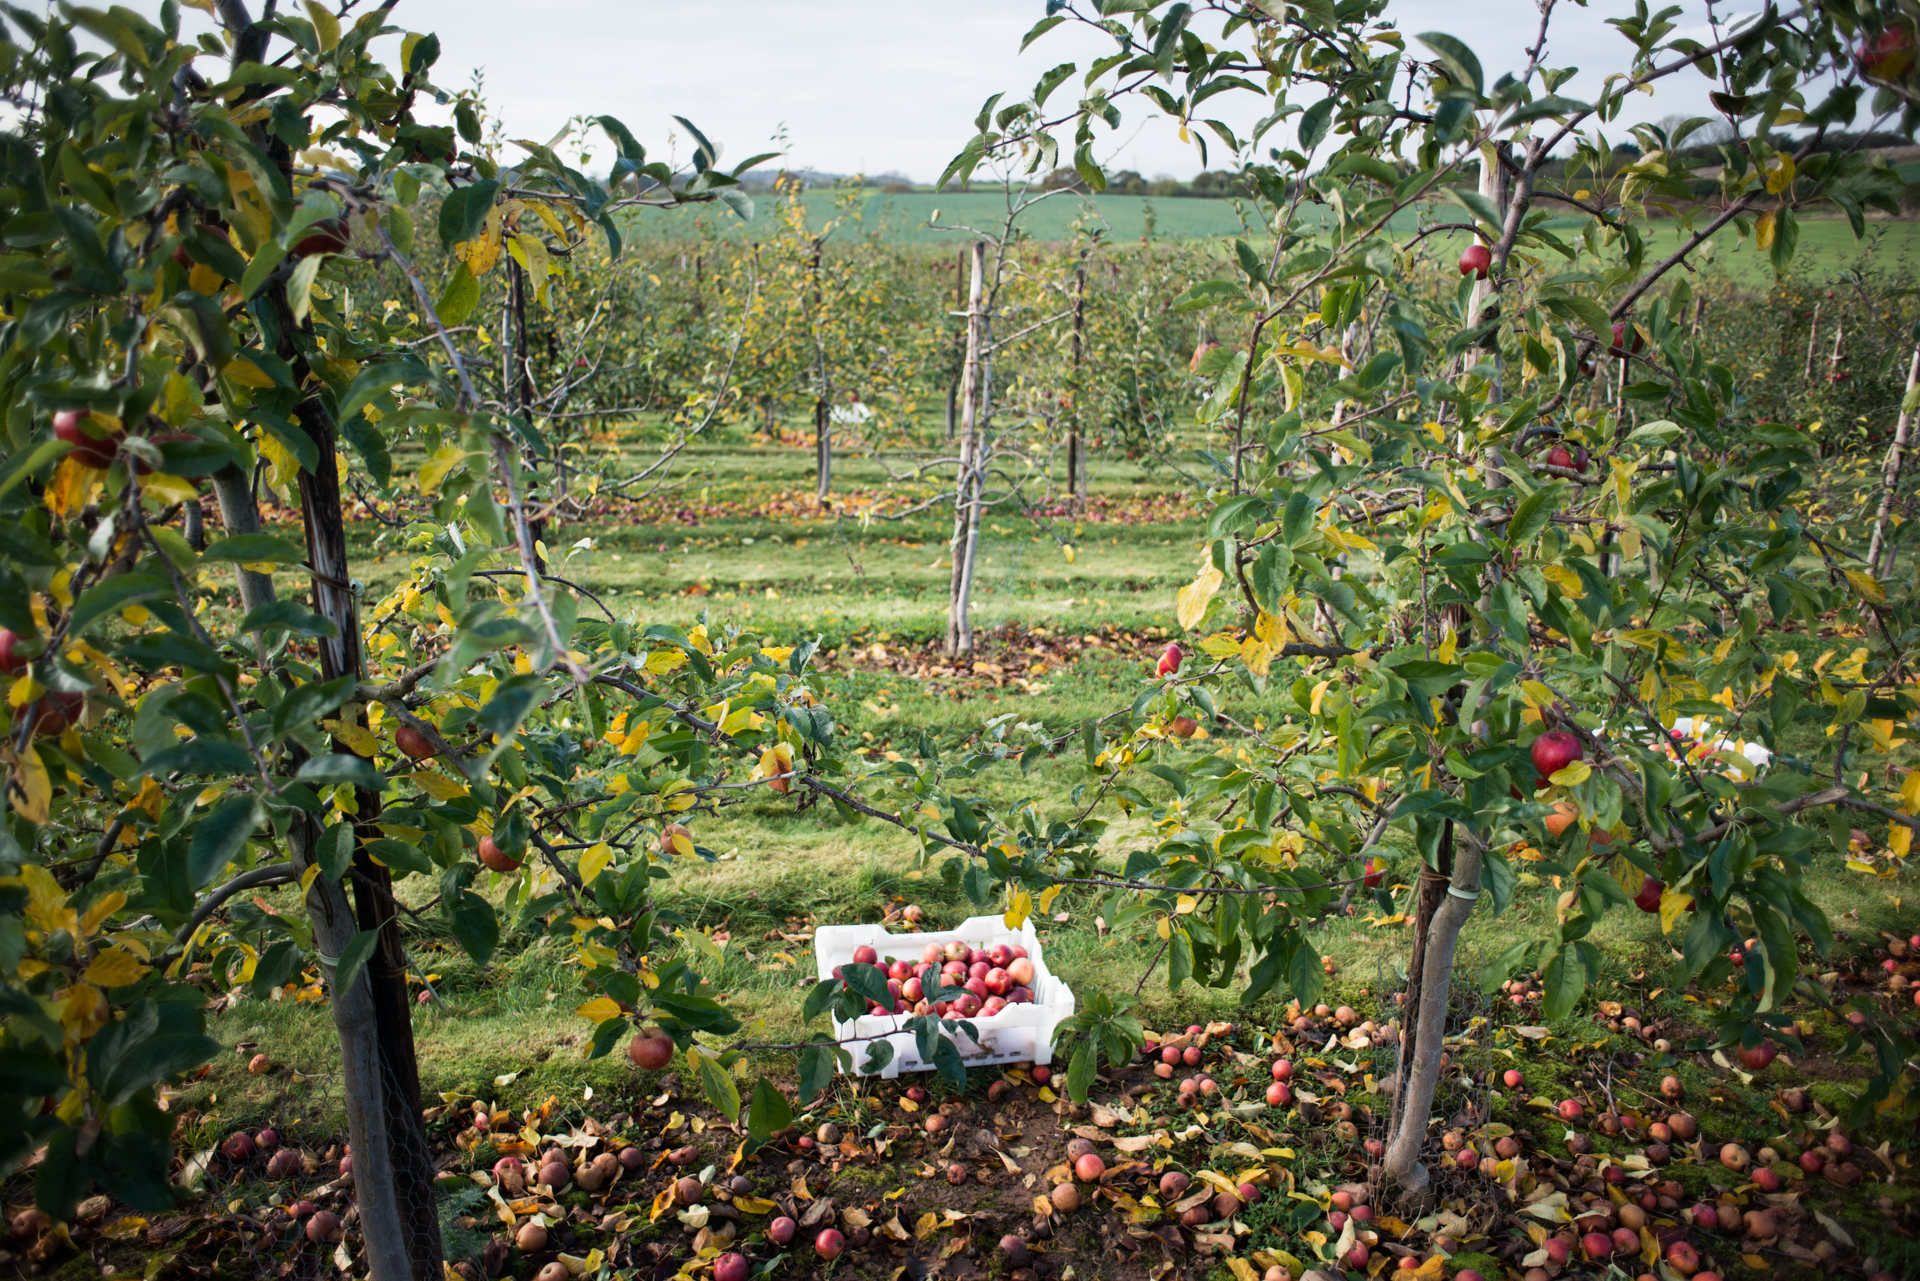 The Gleaning Network - Documenting food waste in the UK - Chris King Photography